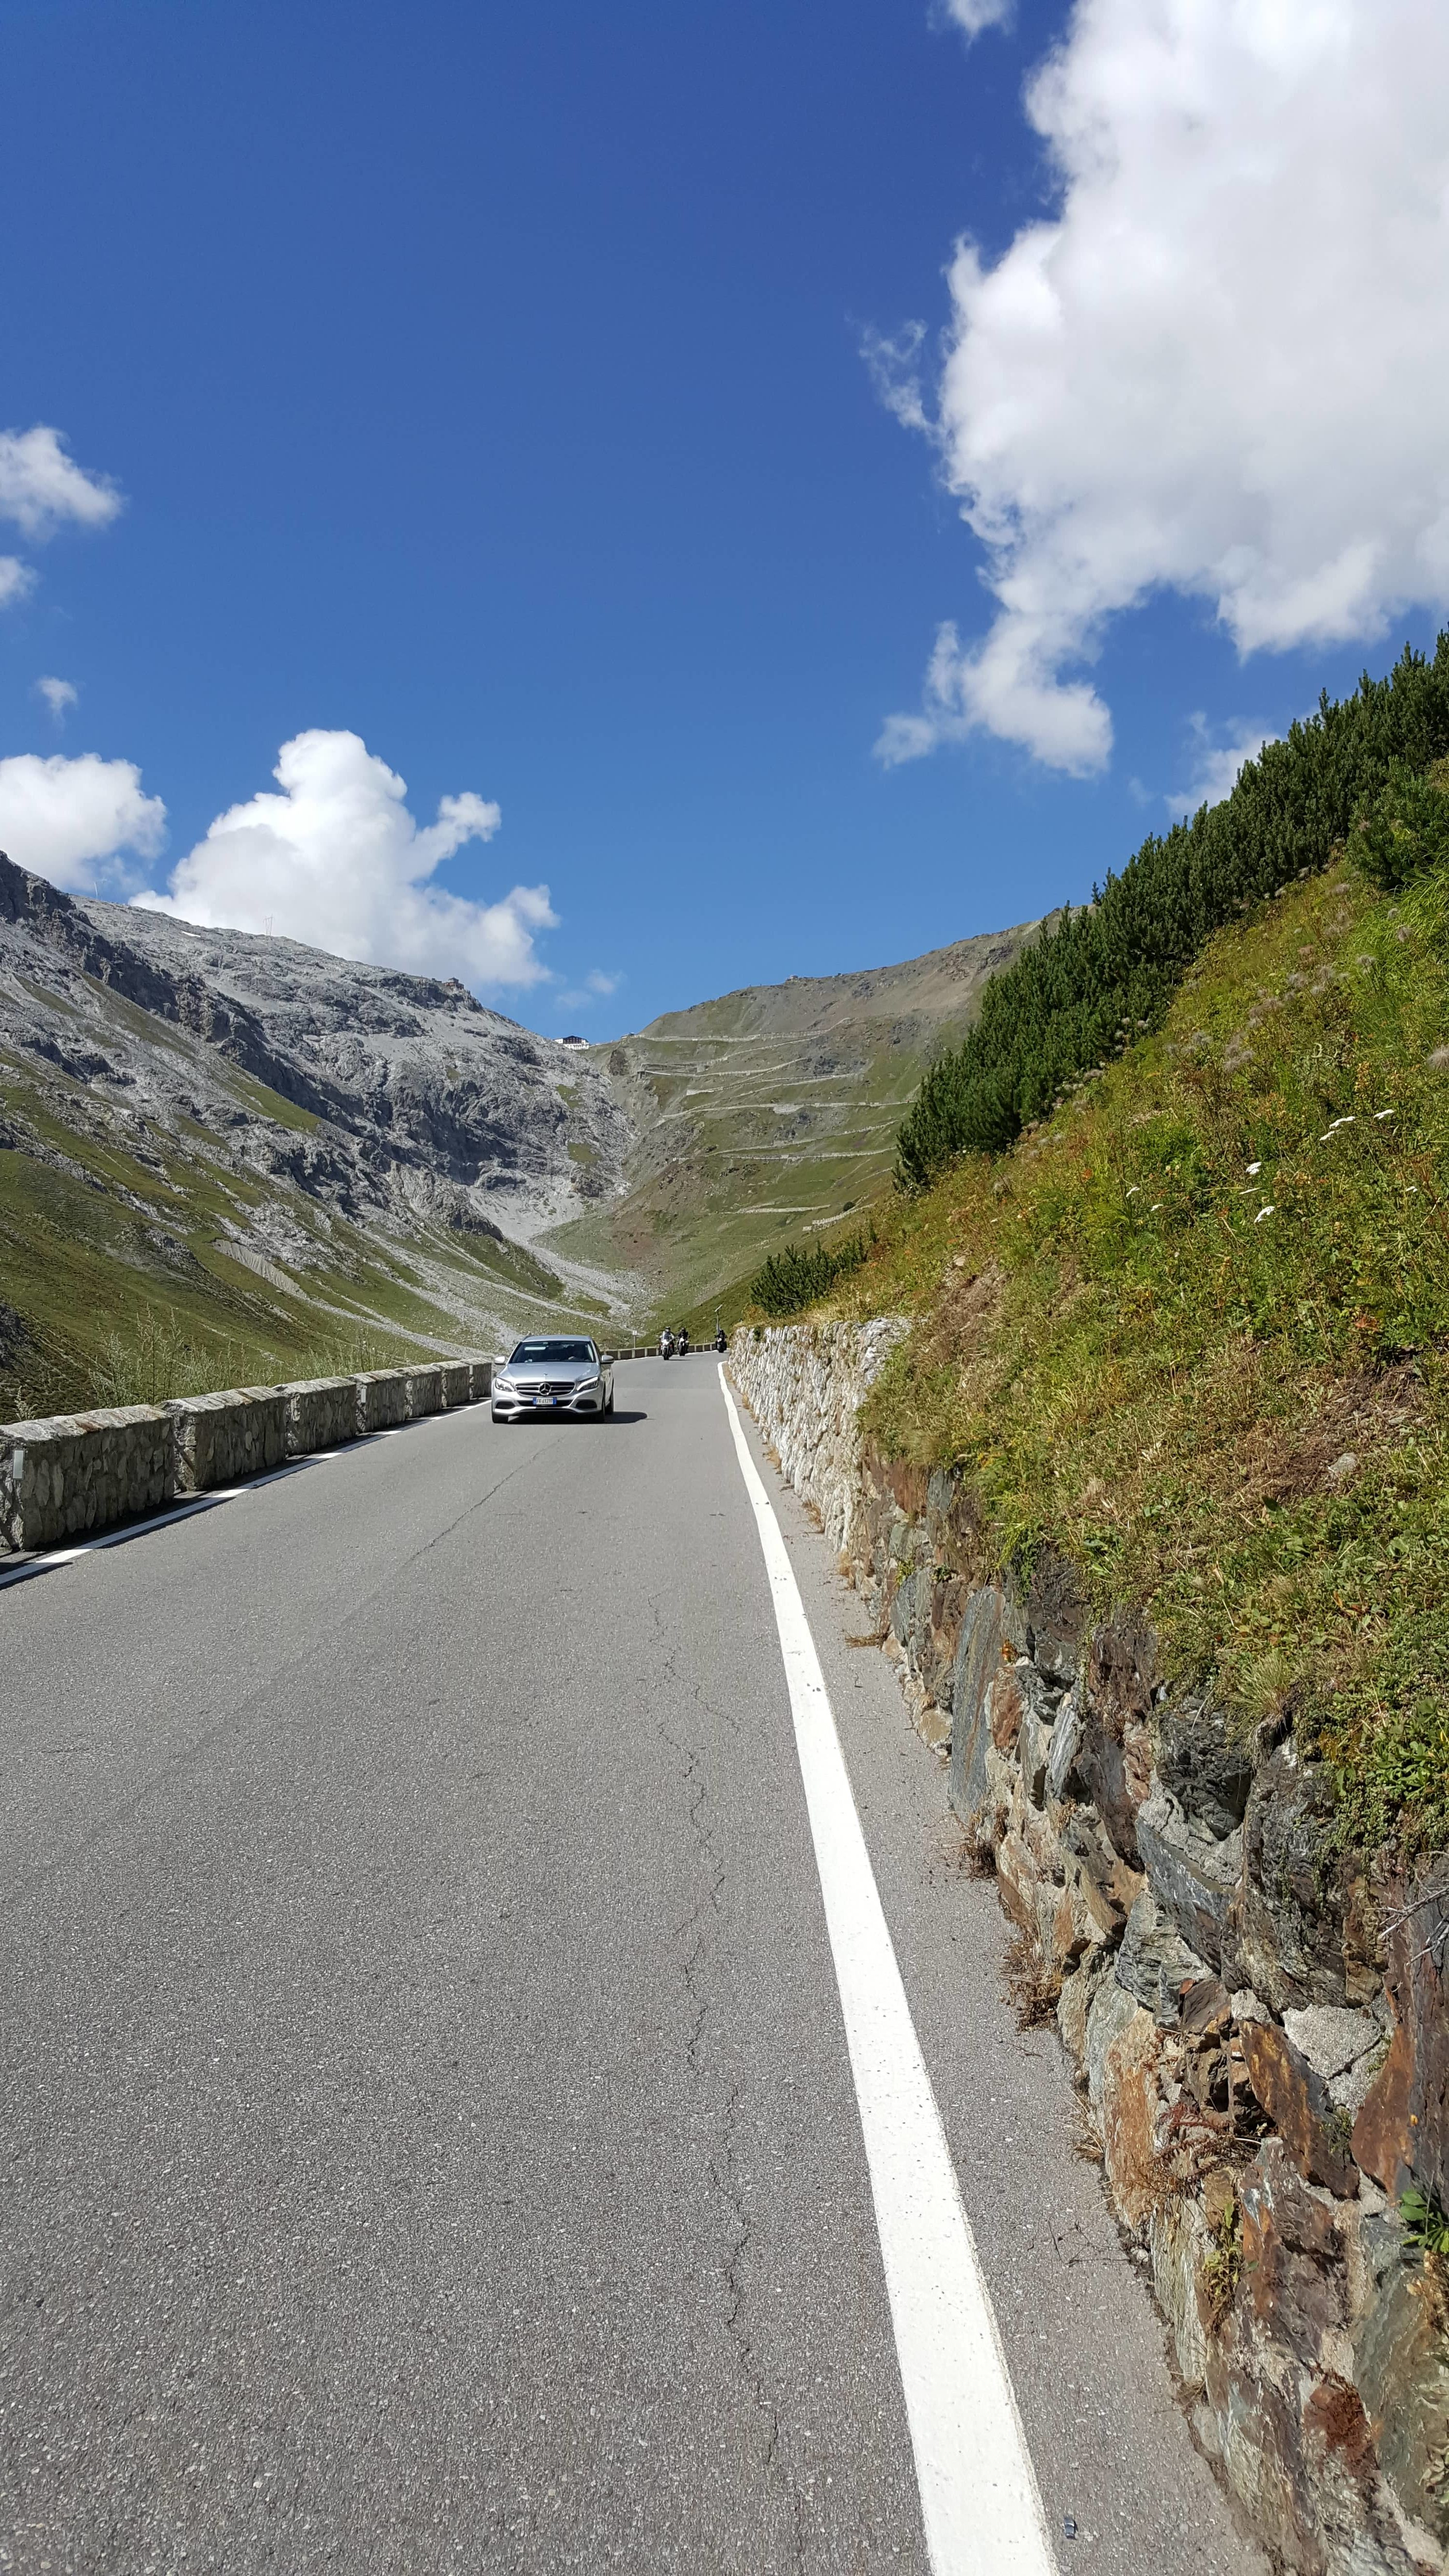 First view of the Passo